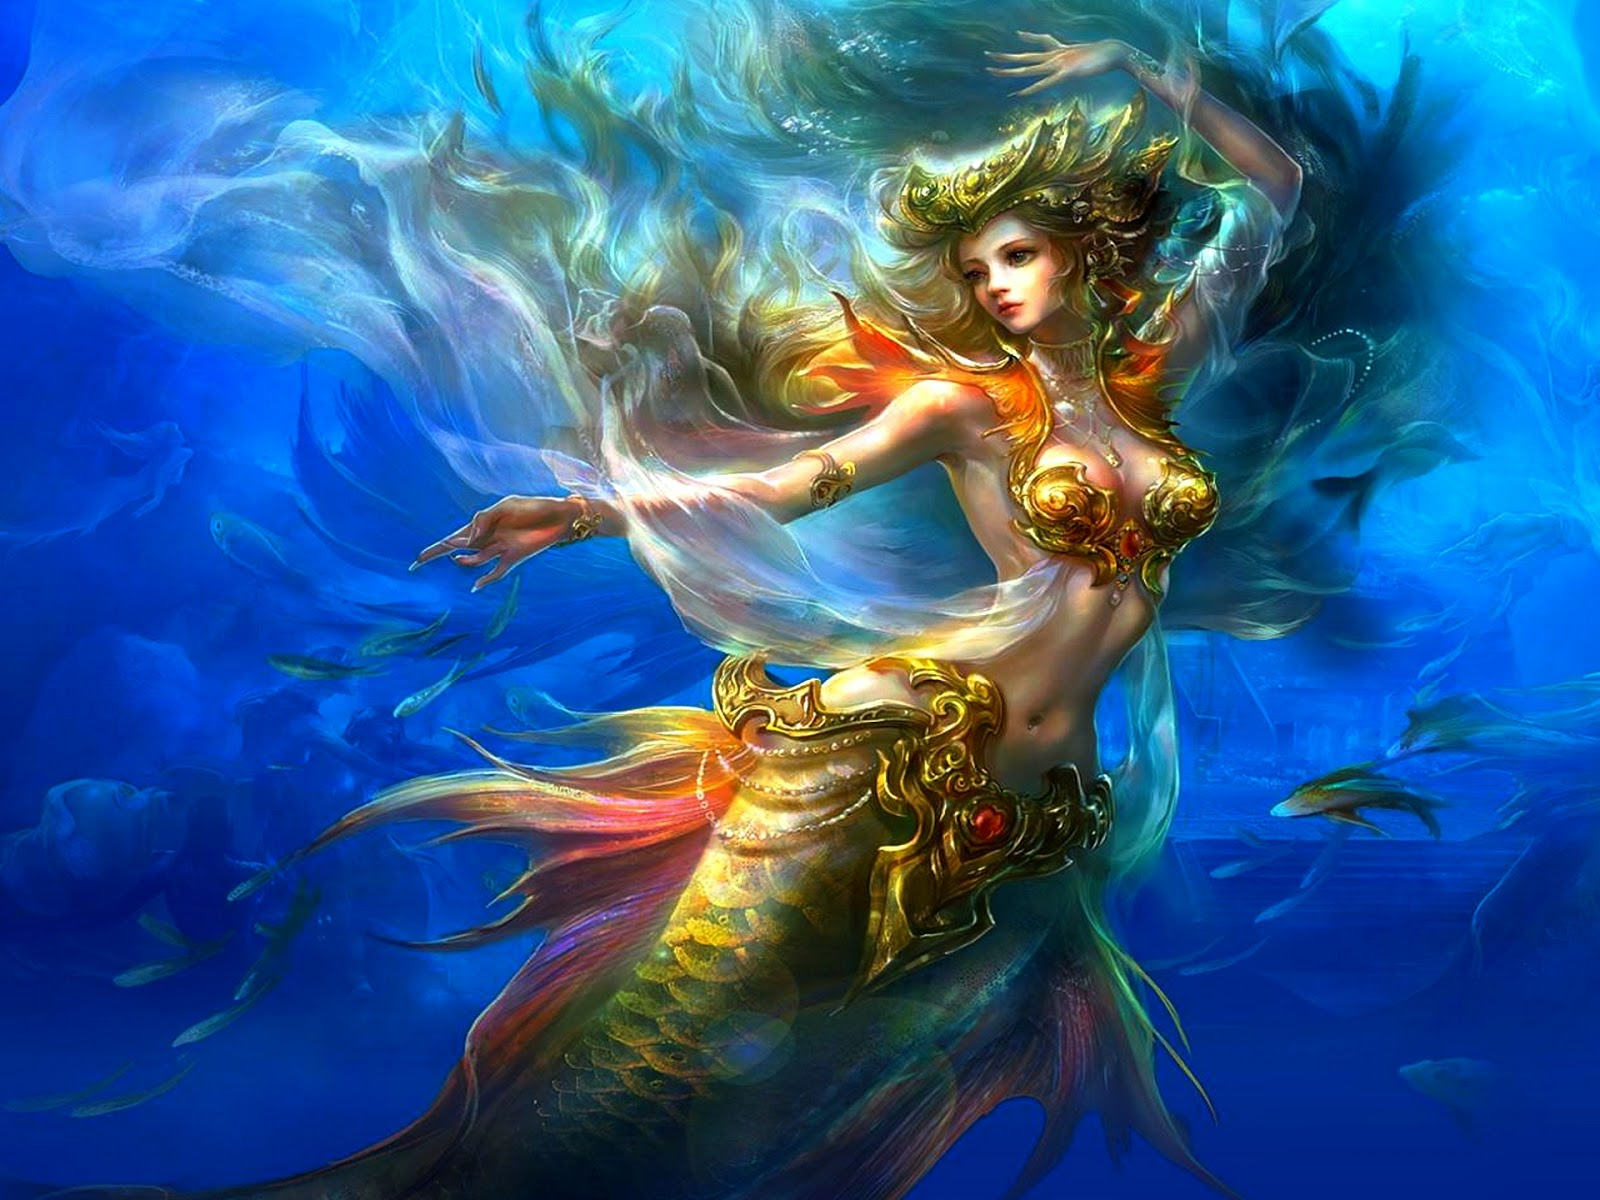 Most beautiful mermaid girl pictures fantasy graphics ...